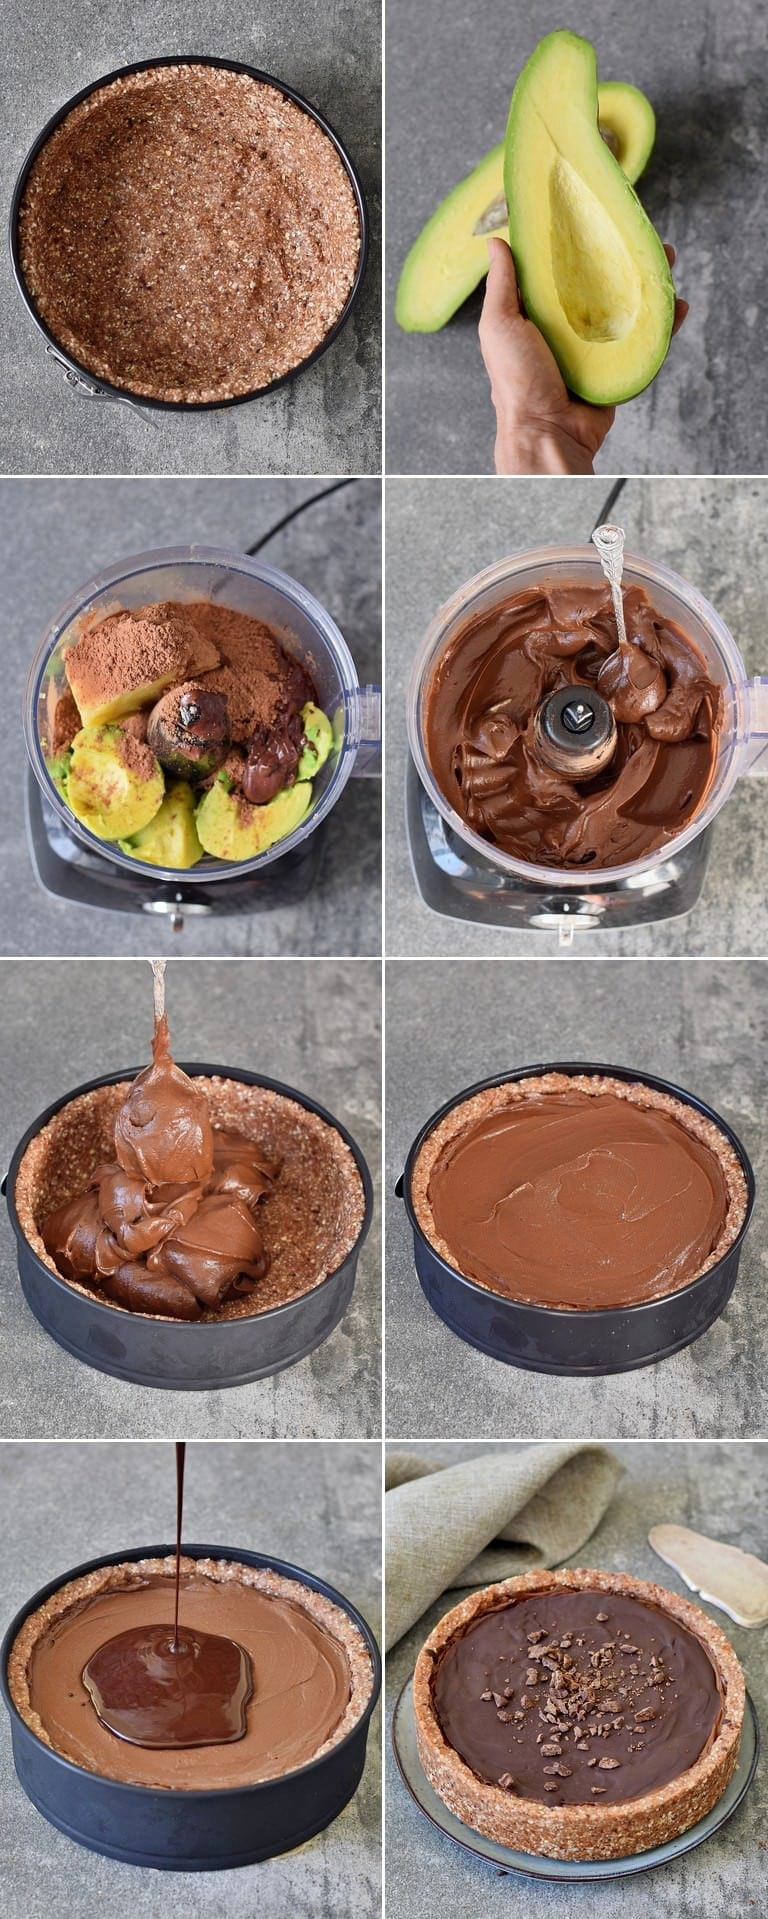 how to make a vegan chocolate pie with avocado